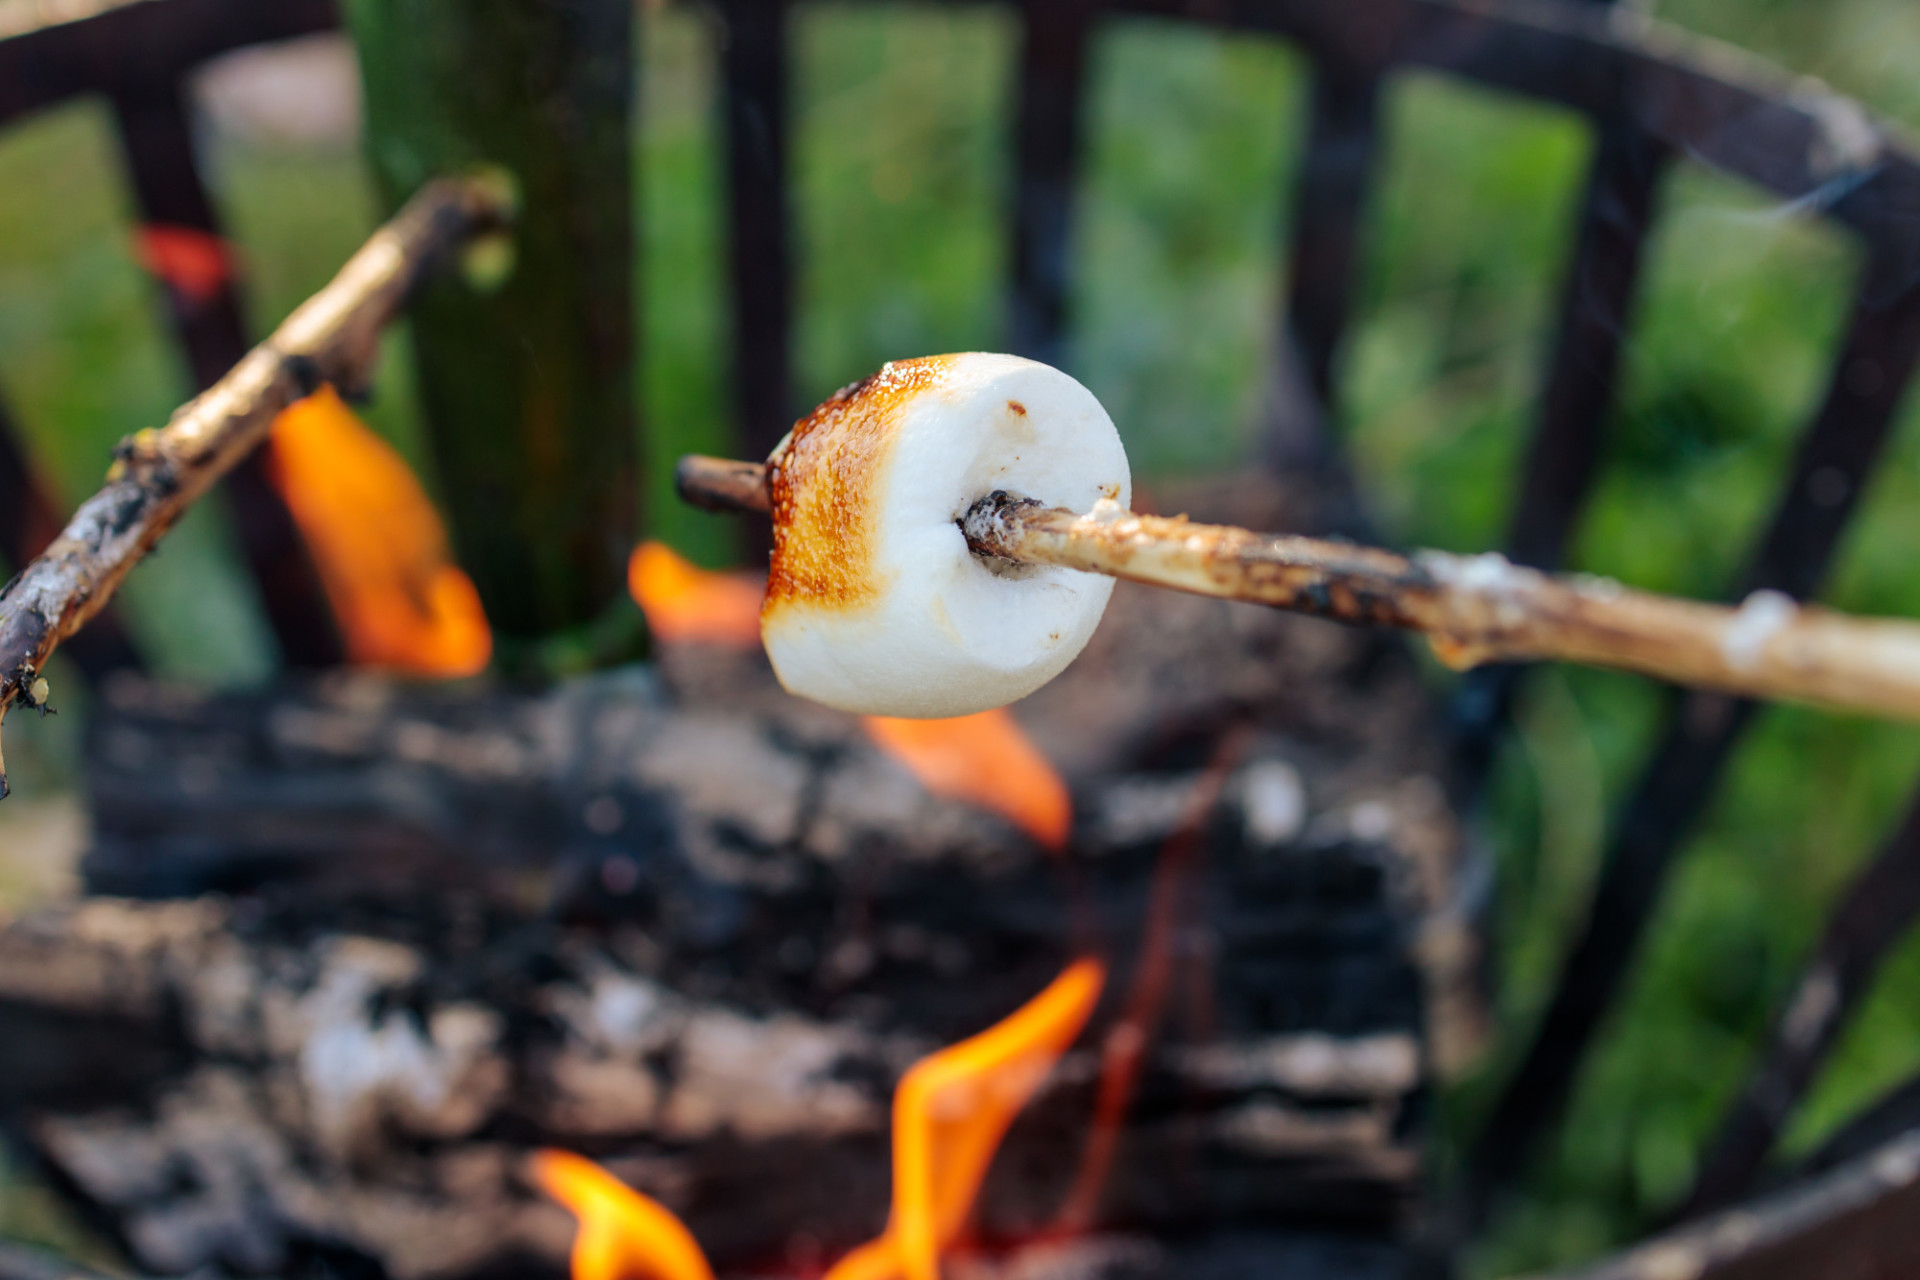 Marshmellow on skewer grilled over fire